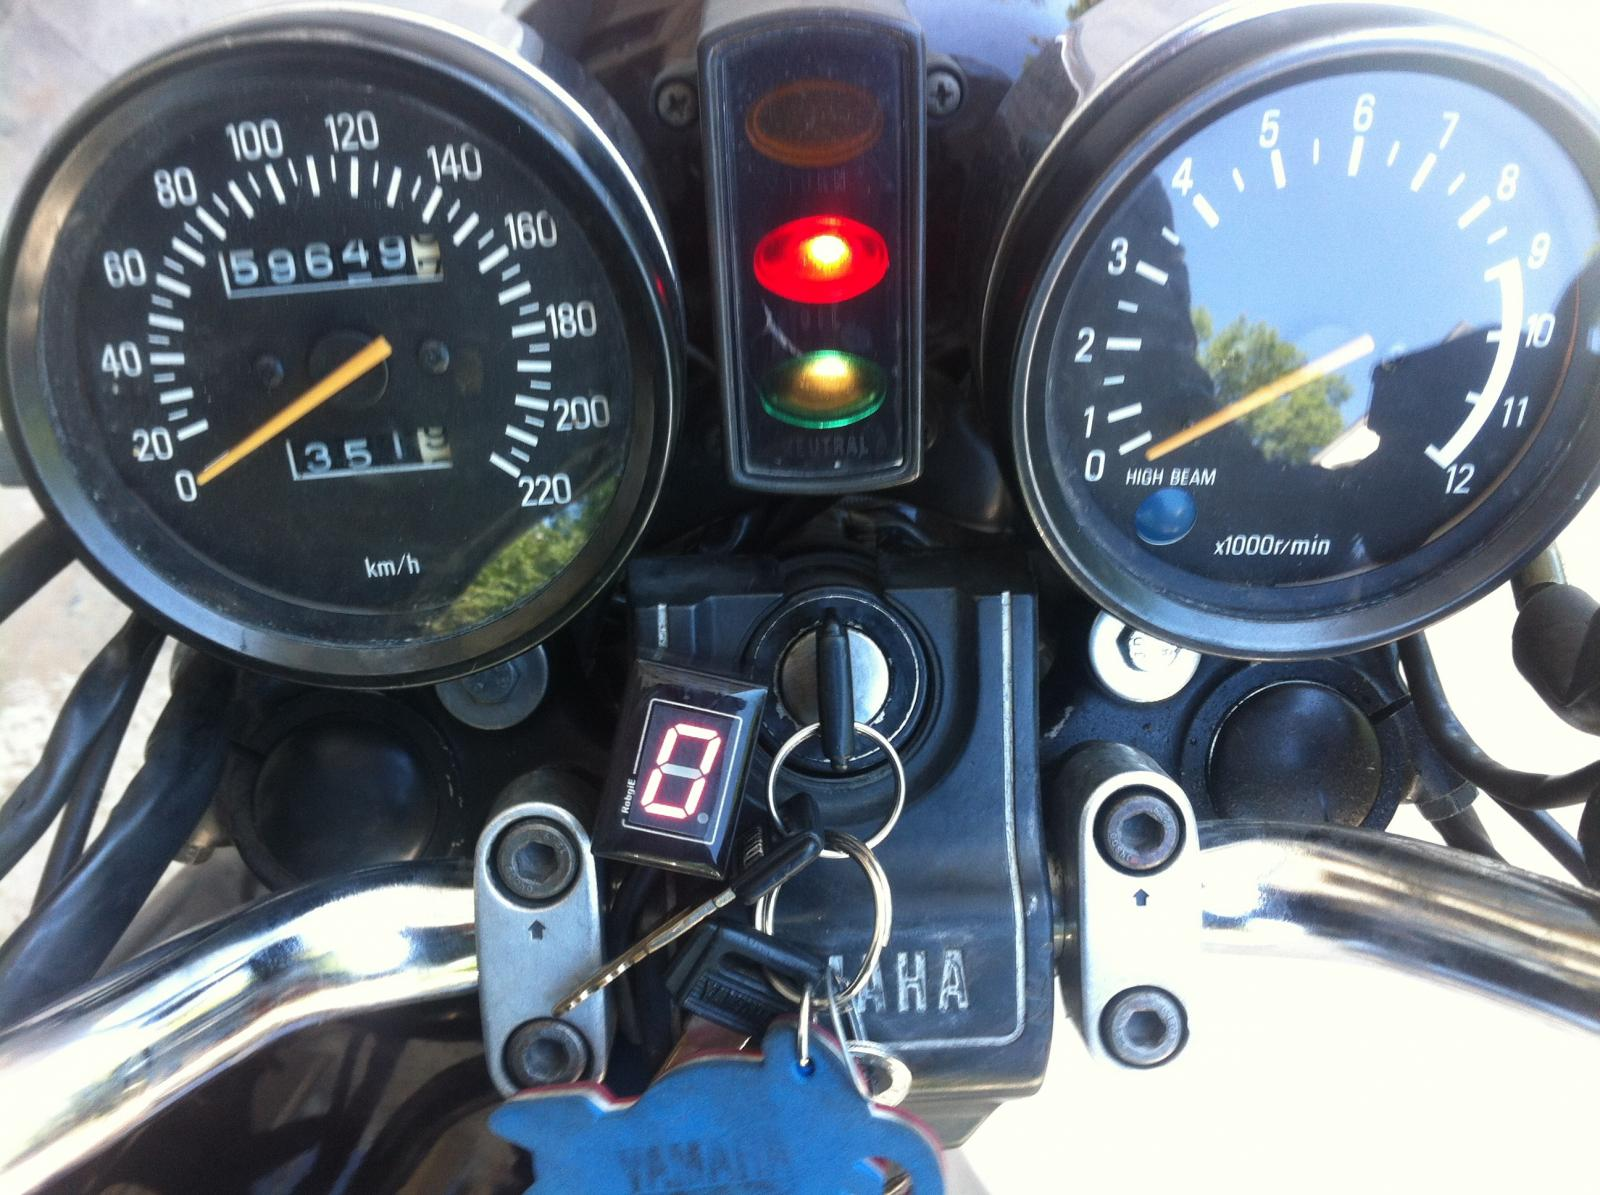 Rt100 Wiring Diagram 20 Images Diagrams Xj550 Tachometer Xs400 Yamaha Rt 100 At Cita